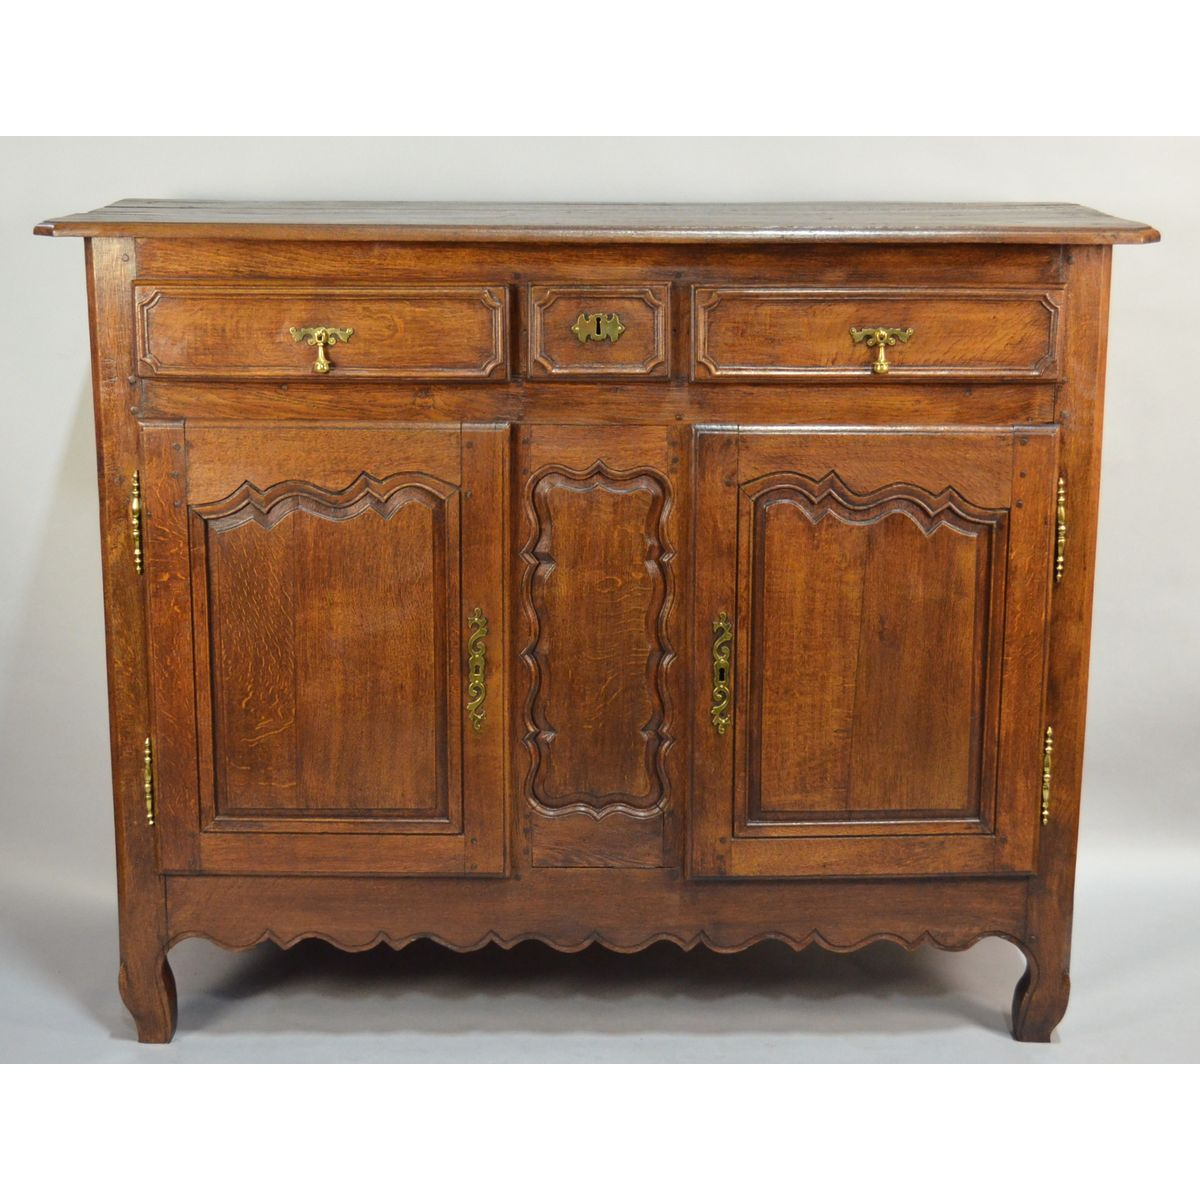 Antique 18th C. Carved Oak Rustic French Country Louis XV